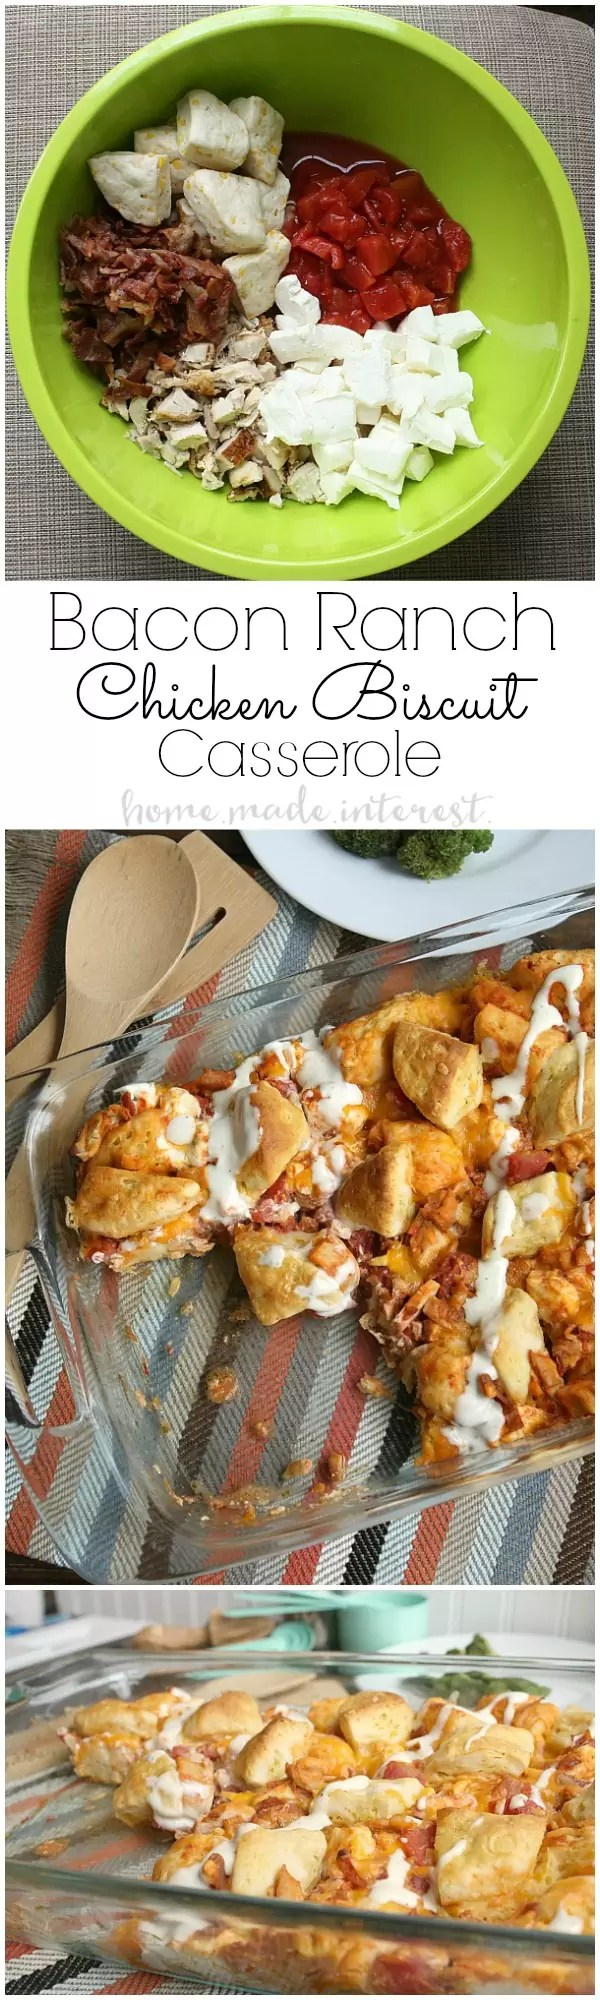 This tasty chicken casserole recipe is made with four of my favorite ingredients, rotisserie chicken, ranch dressing, bacon, and biscuits!